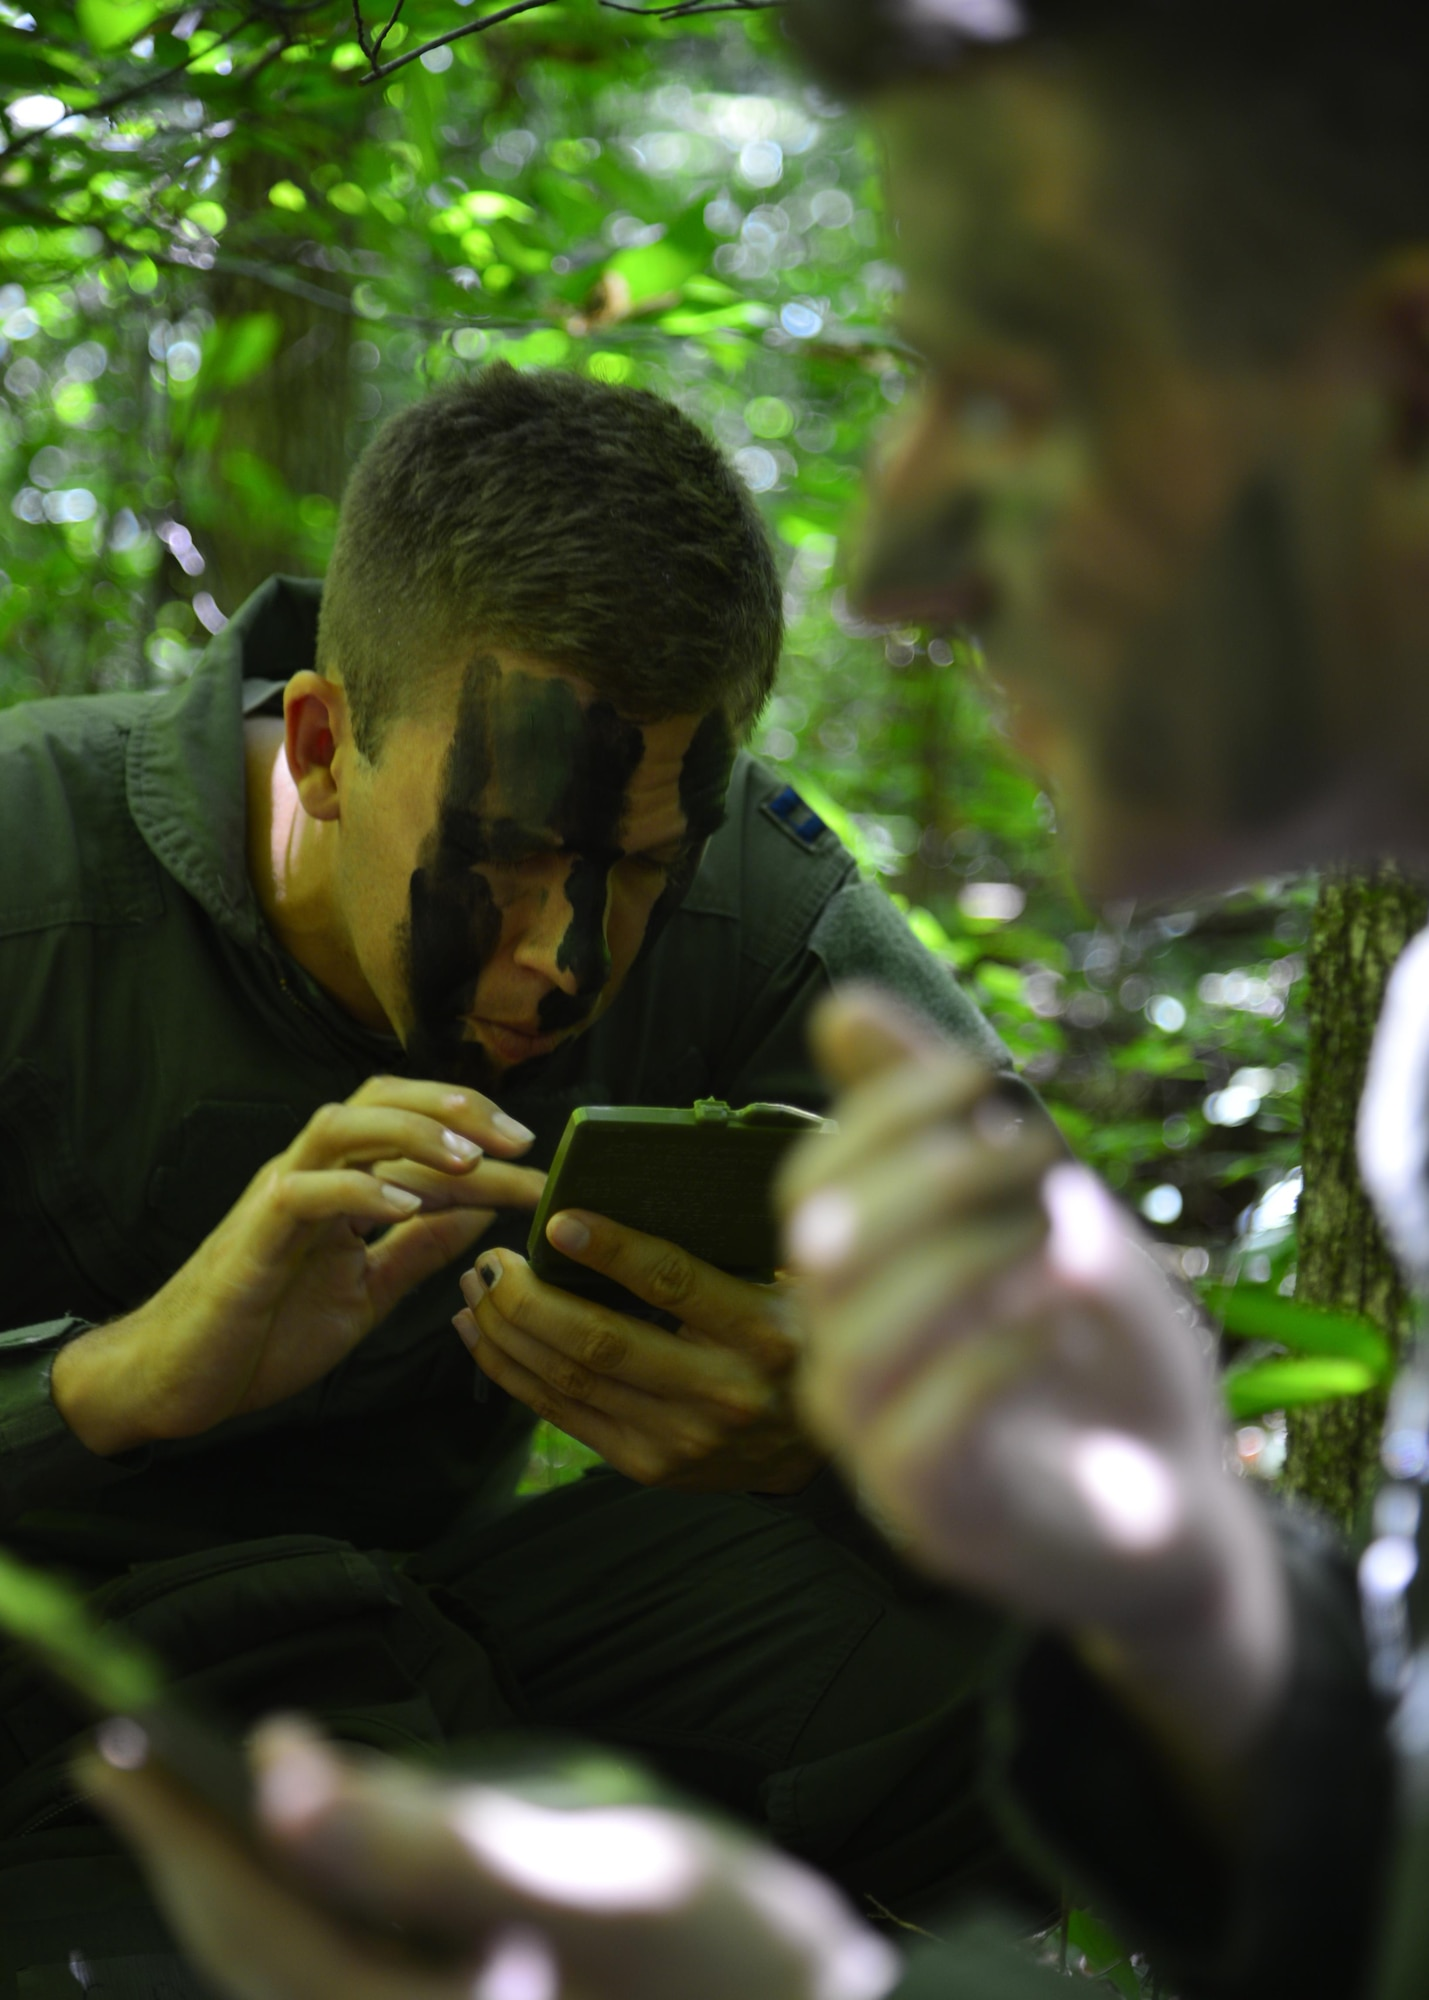 Capt. Rob Willoughby, a C-5M Super Galaxy pilot assigned to the 9th Airlift Squadron, applies camouflage paint to his face during a combat survival training exercise July 16, 2015, at the Blackbird State Forest near Smyrna, Del. Willoughby was part of a five-man team that was evading enemy forces after being captured in the exercise. (U.S. Air Force photo/Airman 1st Class William Johnson)